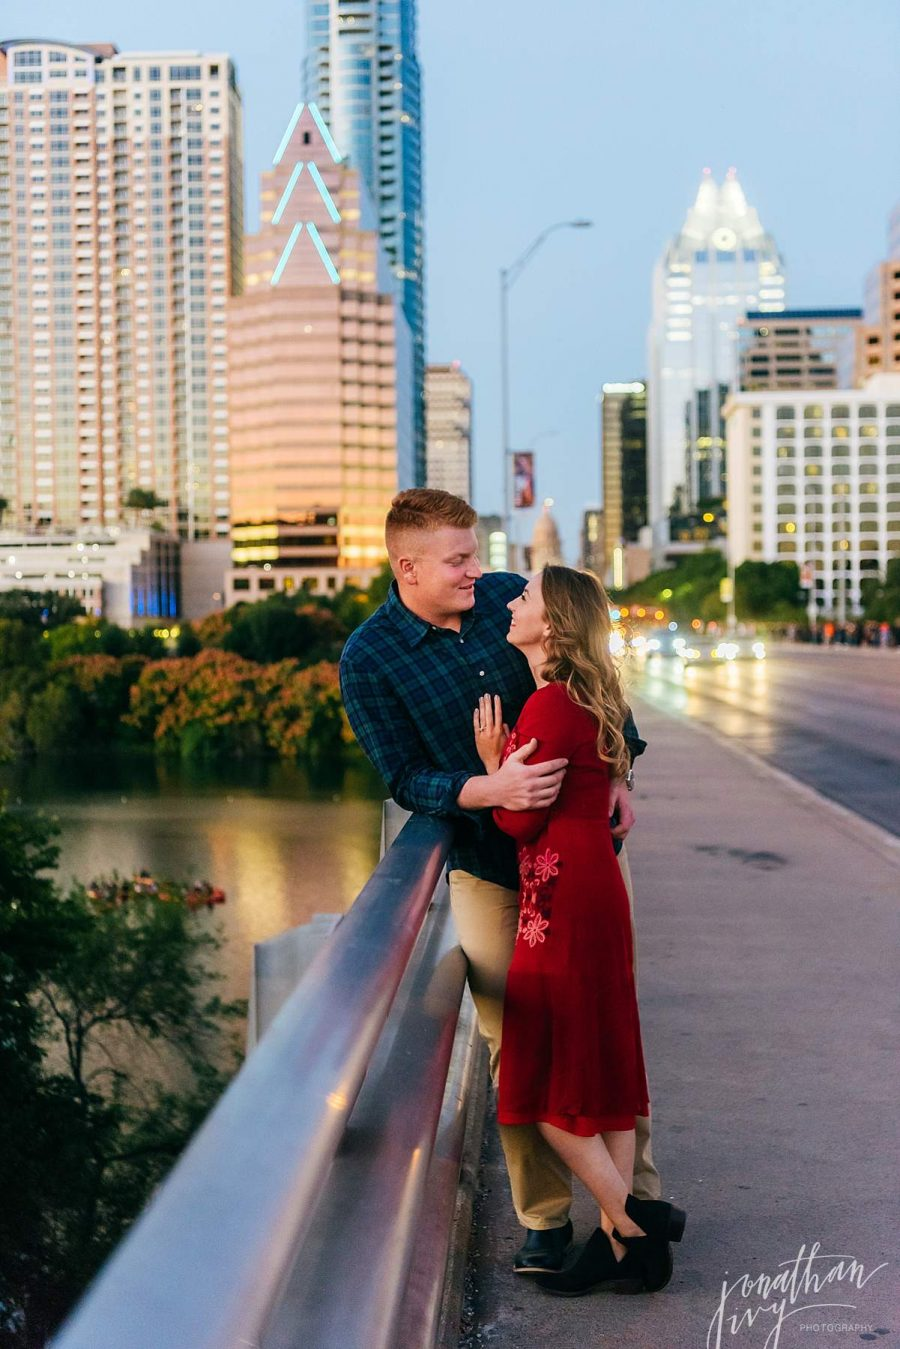 South Congress Bridge Engagement Photos Austin Skyline Sunset Engagement